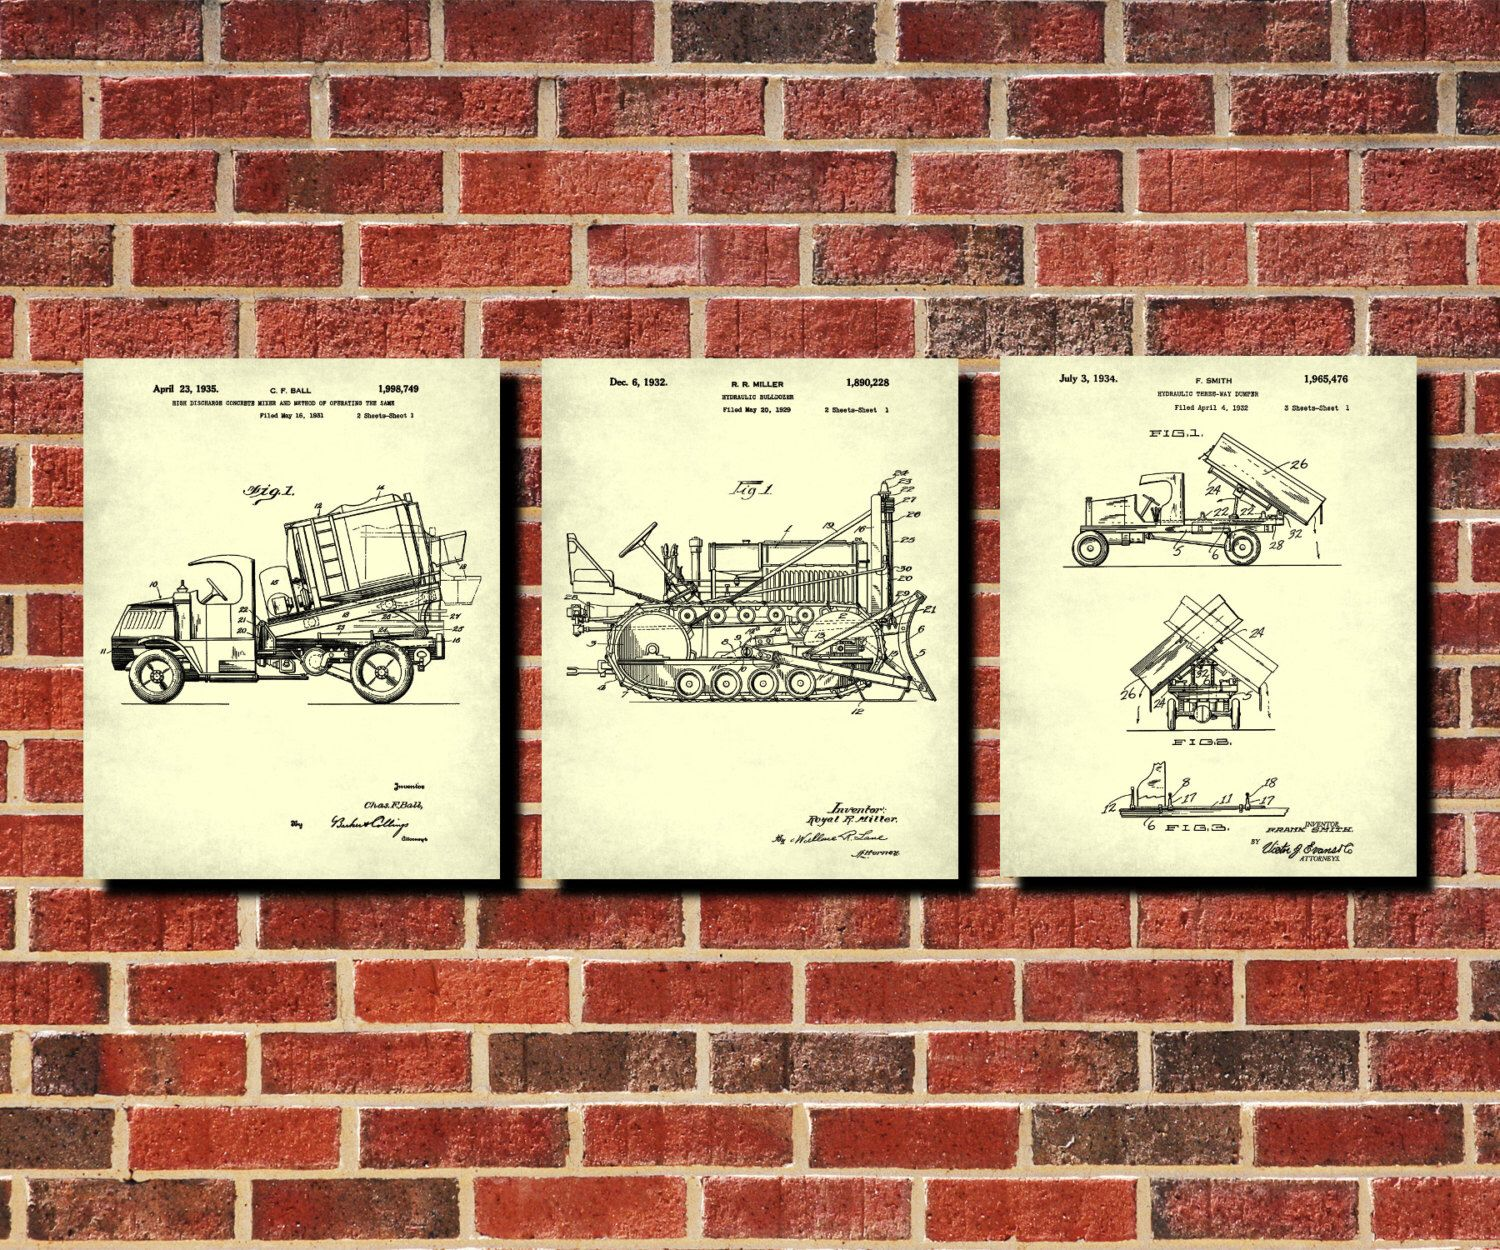 Construction vehicles patent prints set 3 man cave wall art boys construction vehicles patent prints set 3 man cave wall art boys room decor vintage machines blueprints malvernweather Choice Image